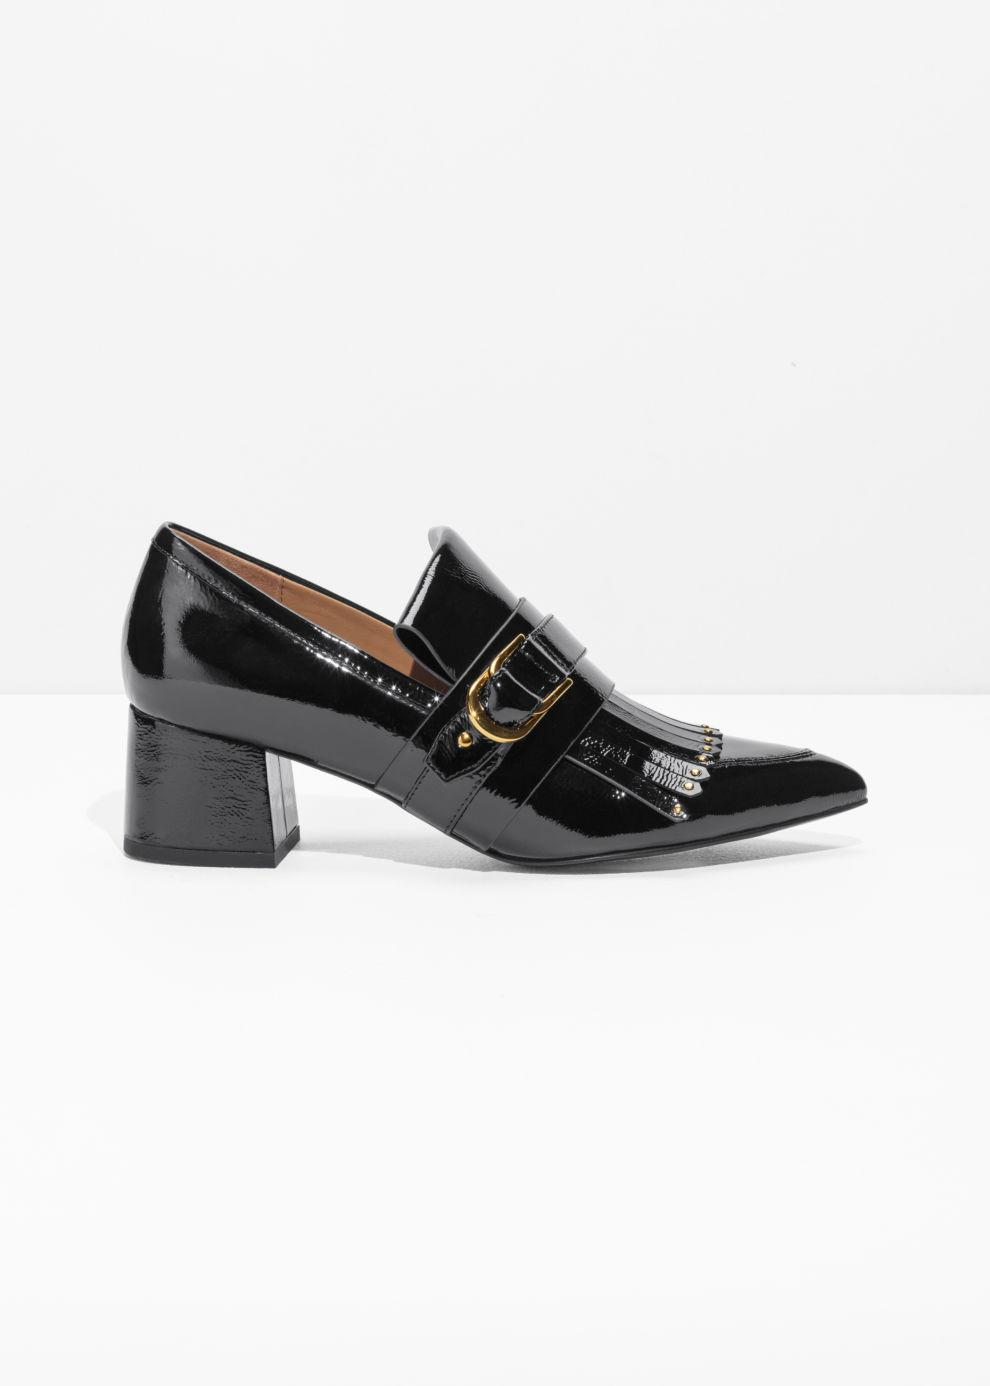 f3e790c45f7 Lyst -   Other Stories Patent Leather Loafer Pumps in Black